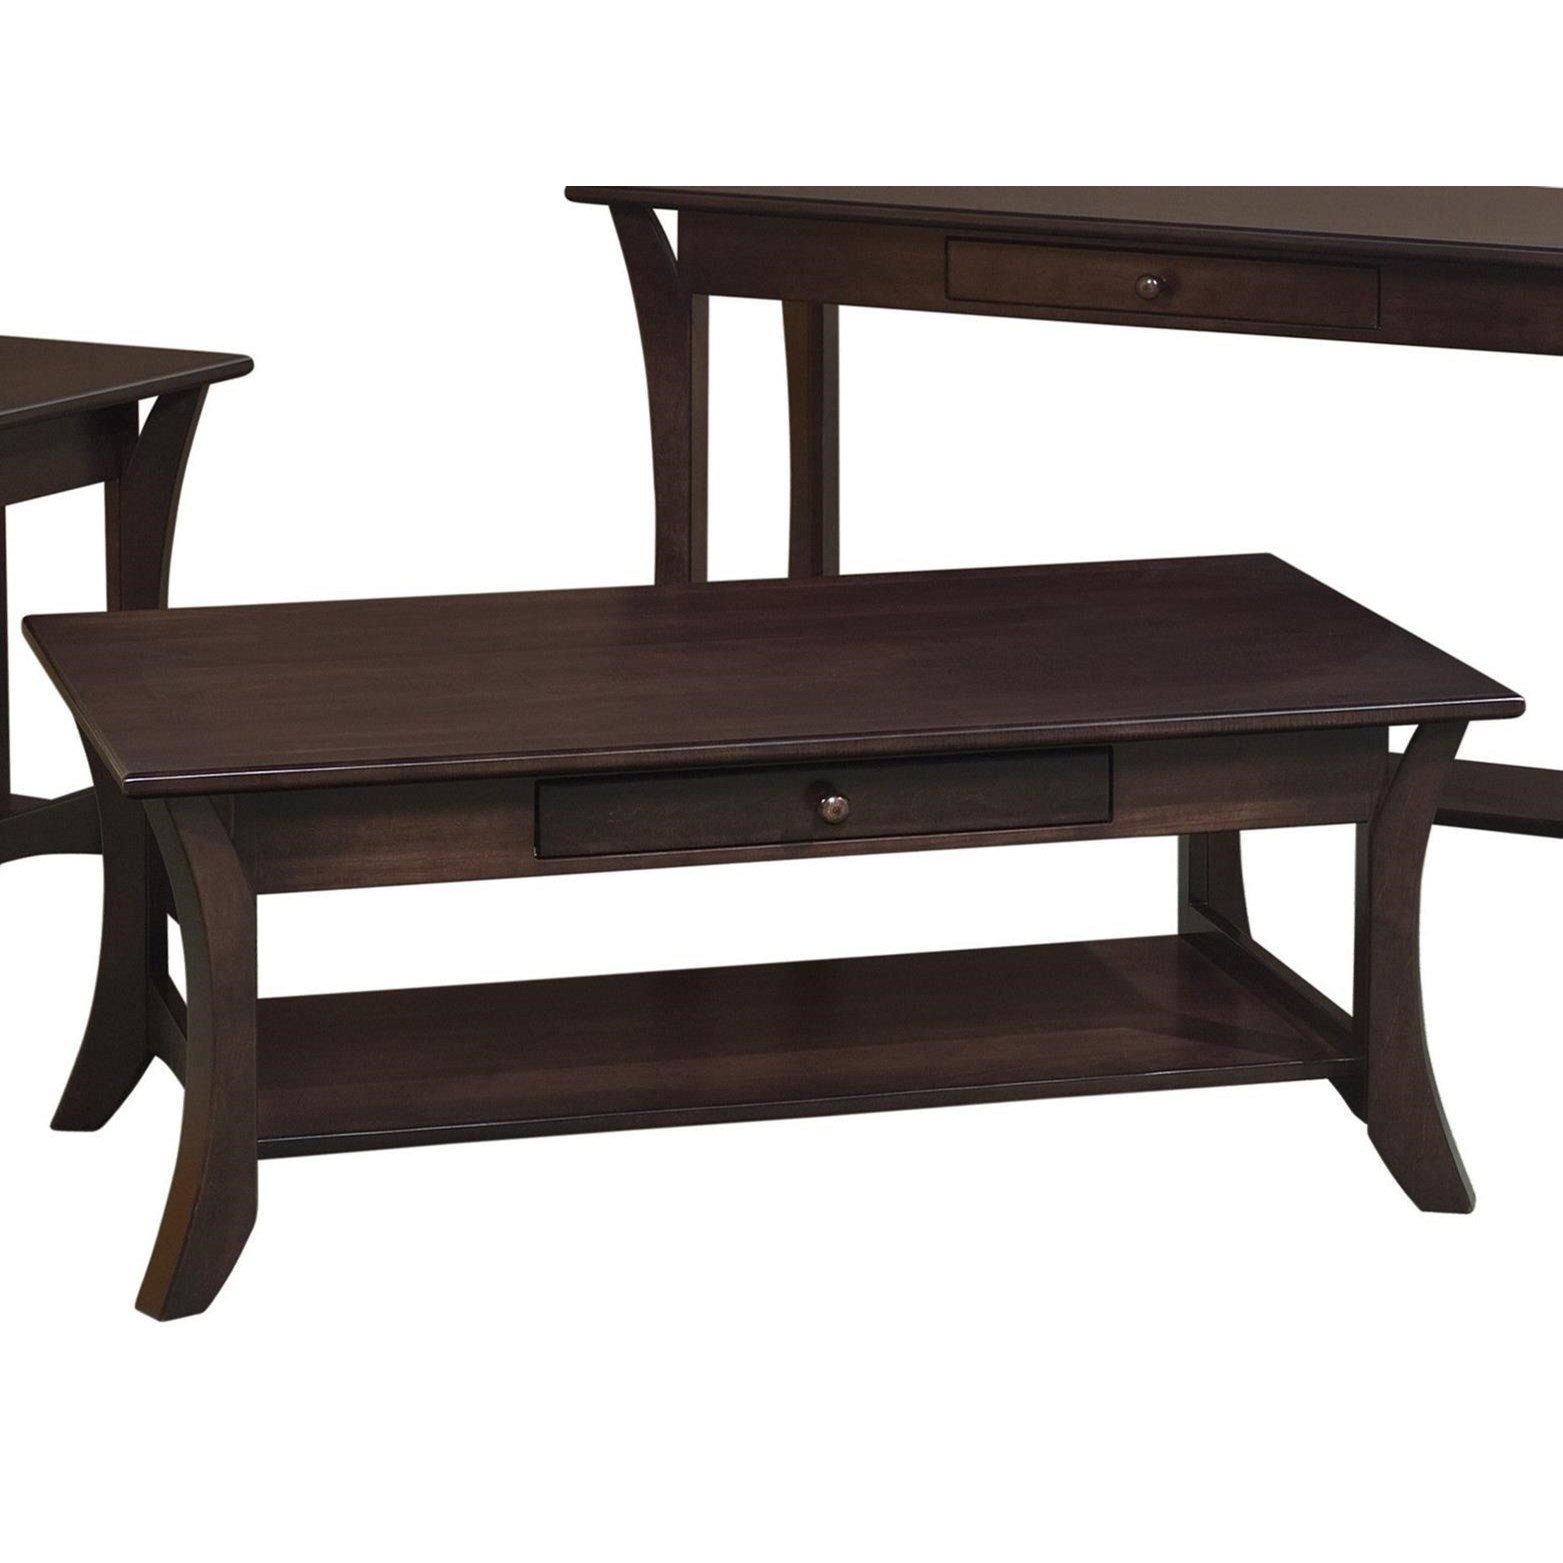 Catalina Coffee Table by Crystal Valley Hardwoods at Saugerties Furniture Mart